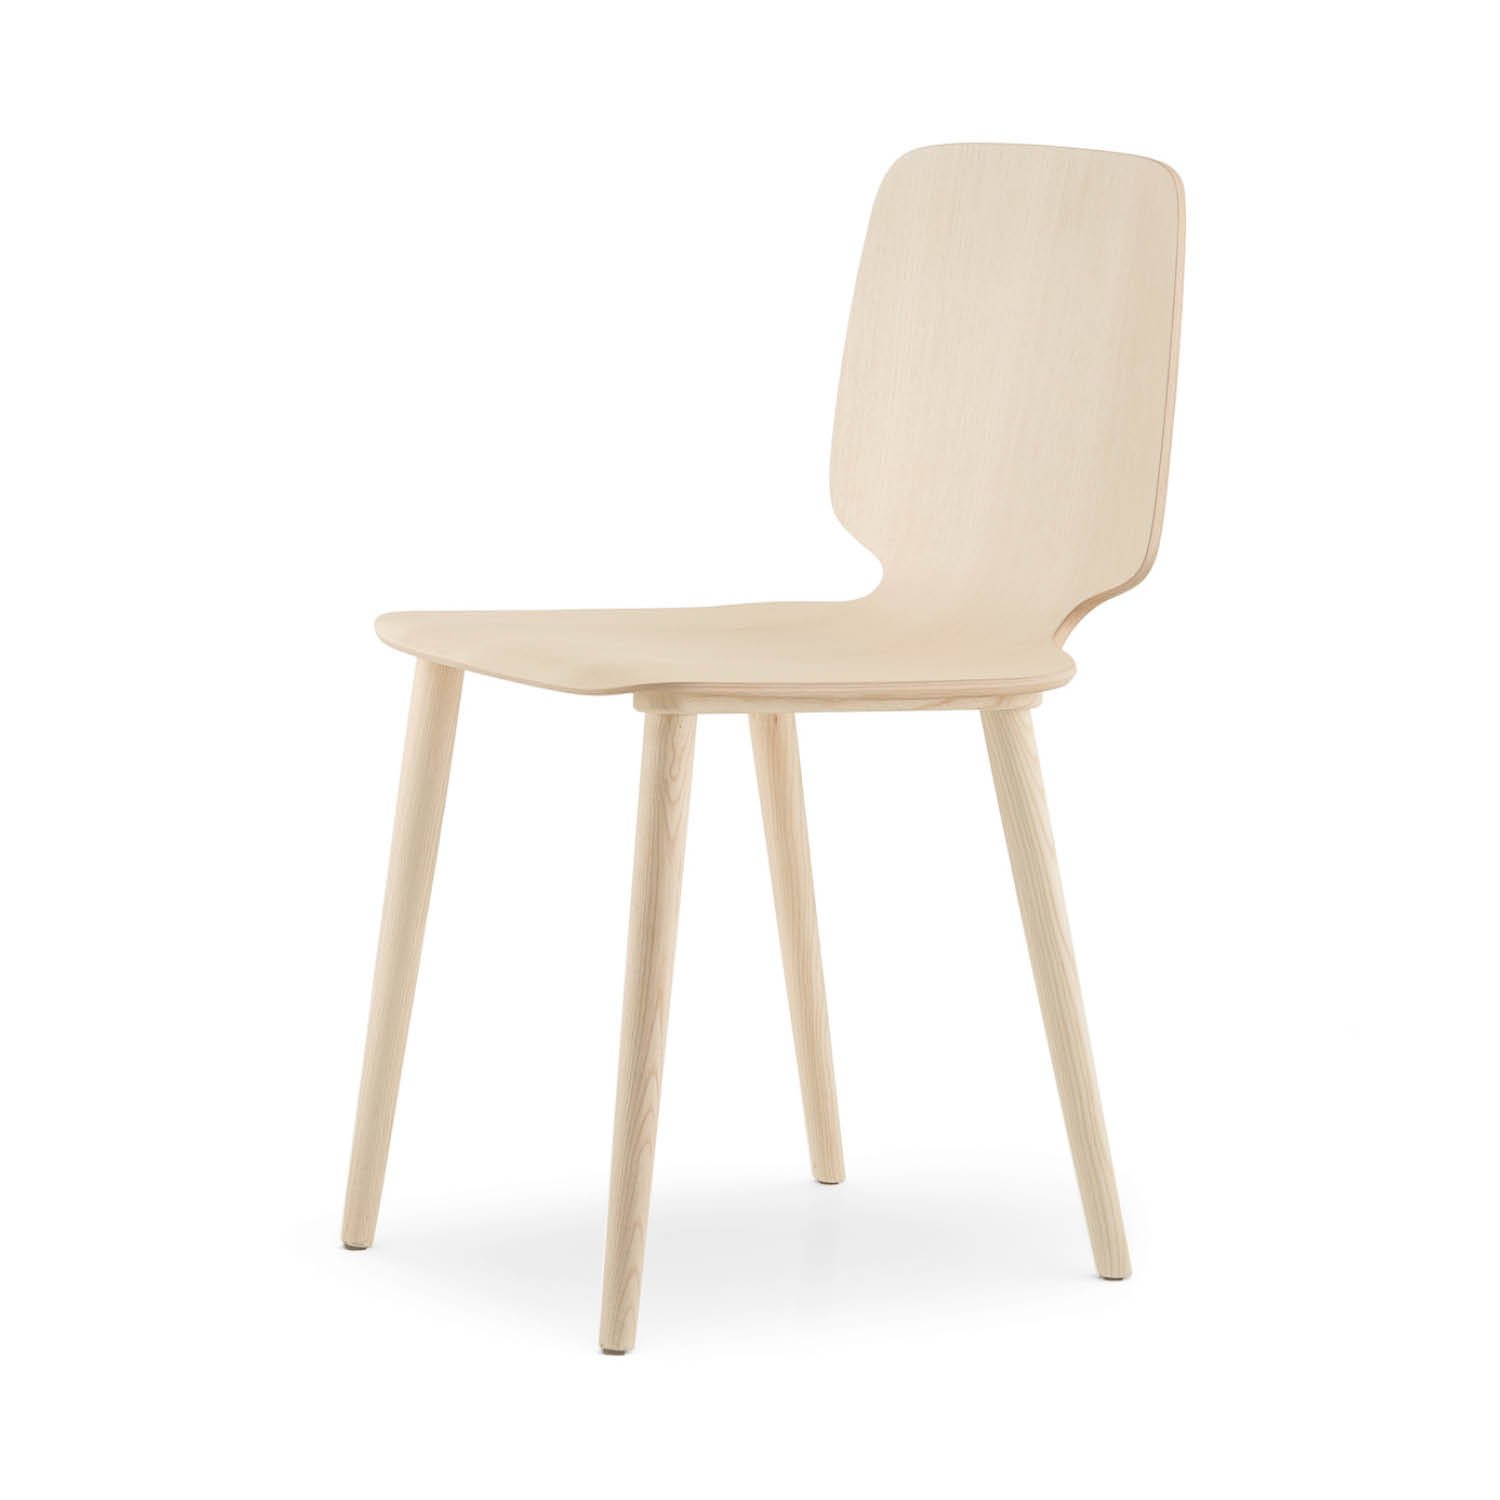 pedrali-babila-chair-2700